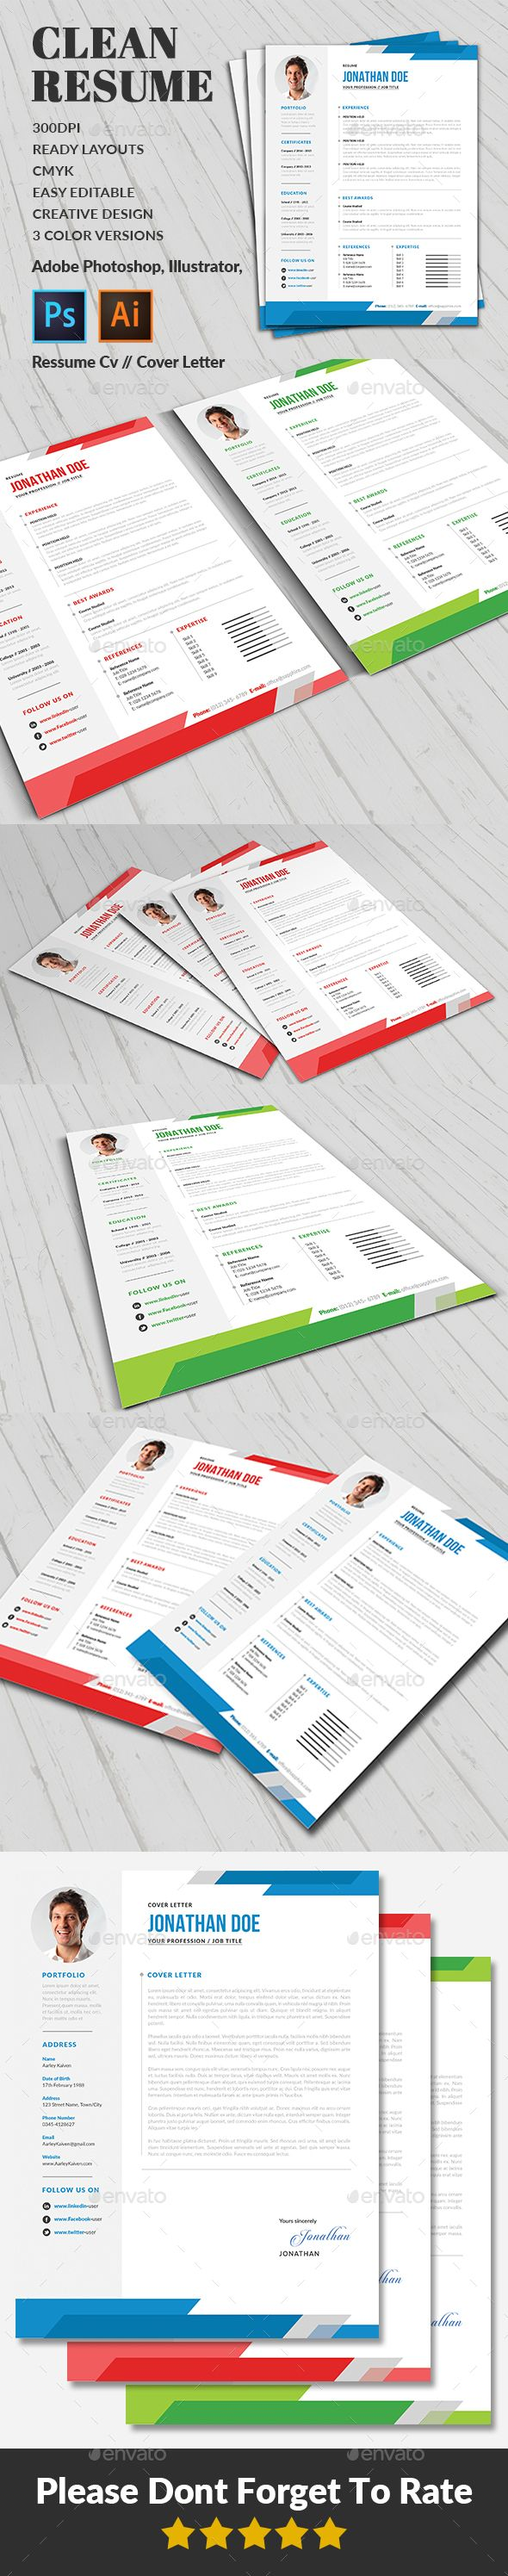 Resume / CV Resume / CV  is a professional, clean, & creative Resume / CV template designed to make a good impression.  ................................................  Features :  - Editable in adobe photoshop  - Editable in adobe Illustrator  - Professional design